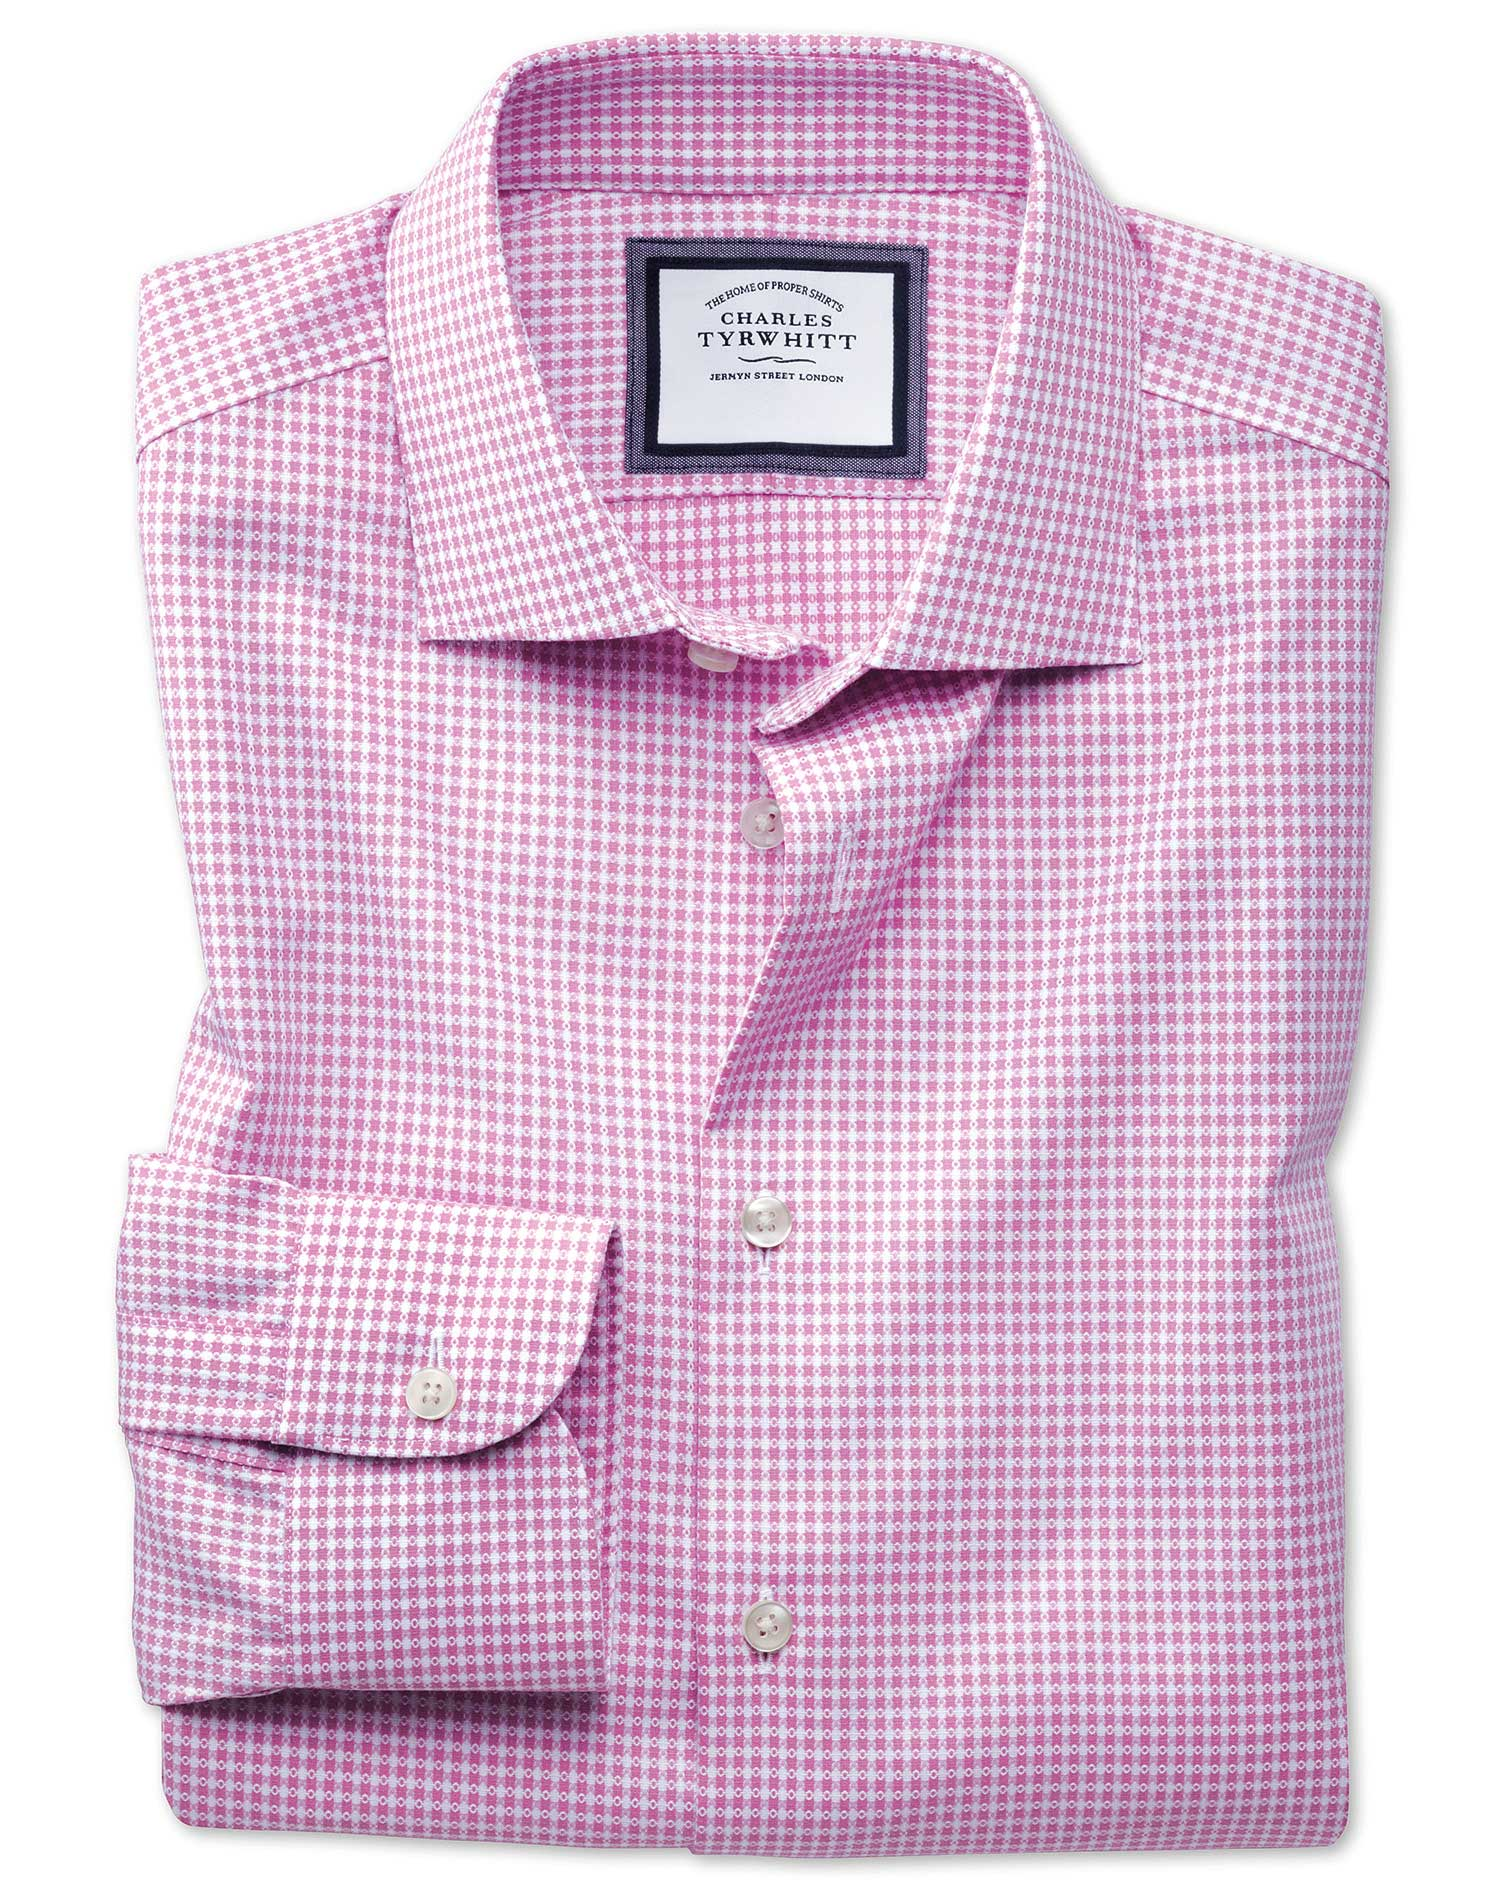 Extra Slim Fit Semi-Cutaway Business Casual Non-Iron Modern Textures Pink and White Spot Cotton Form